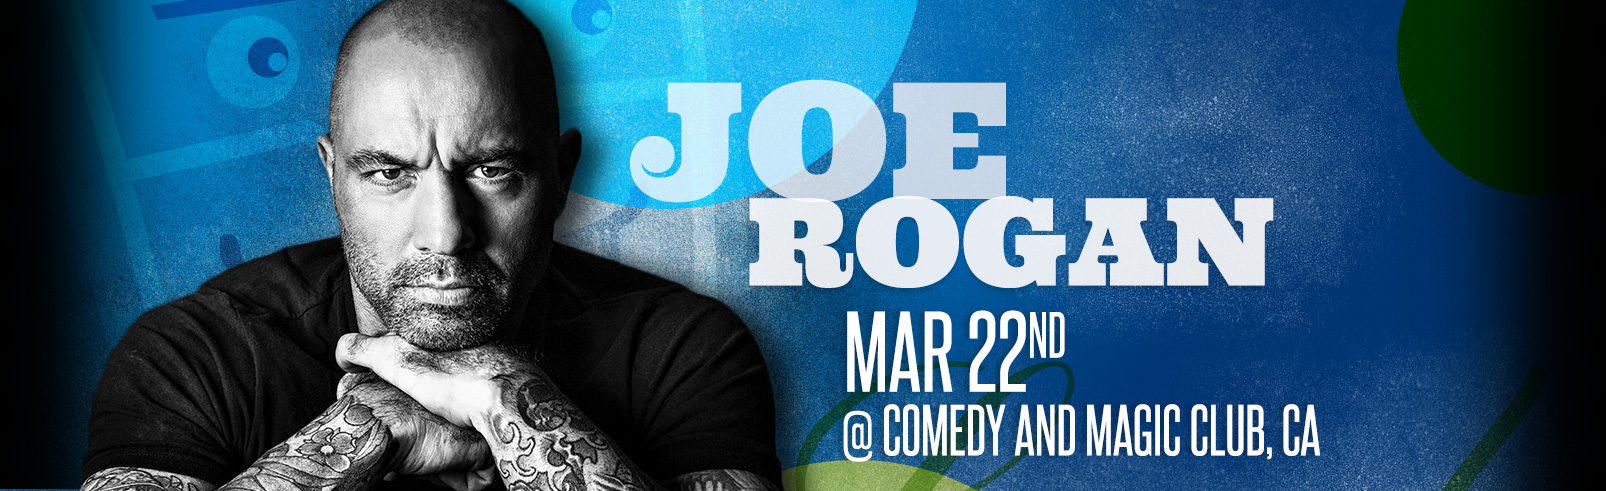 Joe Rogan @ Comedy and Magic Club